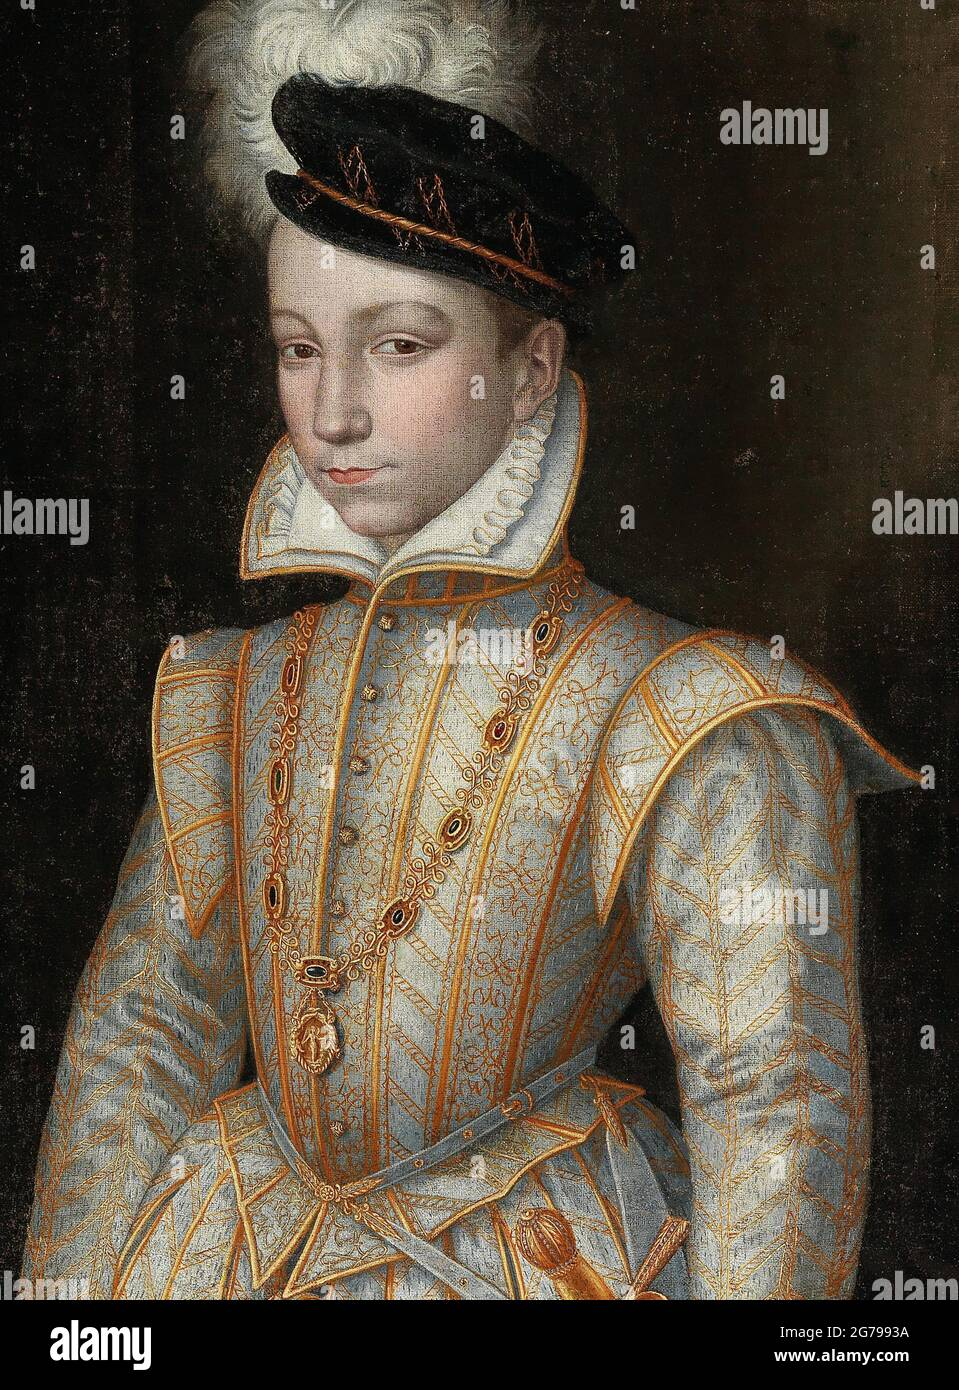 Portrait of King Charles IX of France (1550-1574). Museum: PRIVATE COLLECTION. Author: ANONYMOUS. Stock Photo